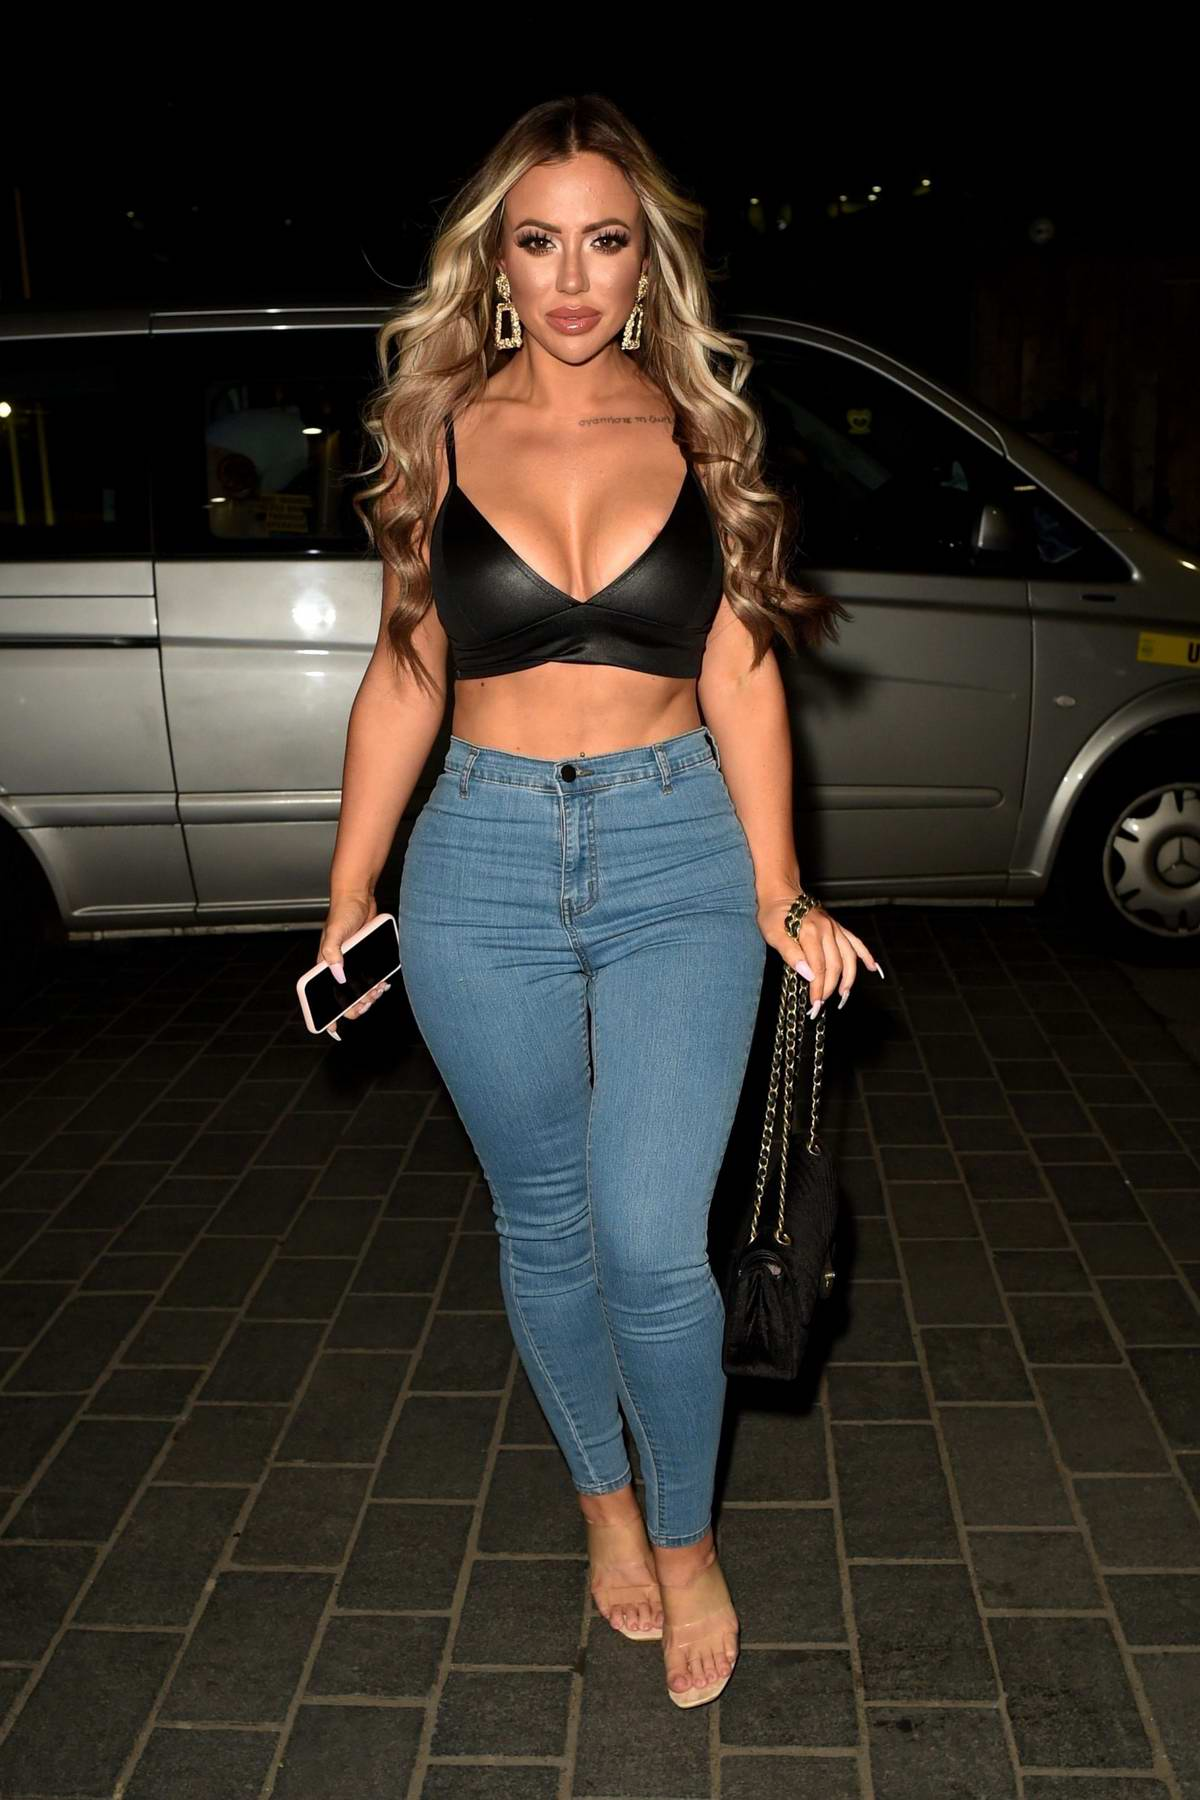 Holly Hagan wears a black crop top and jeans during a night out at BLVD in Manchester, UK